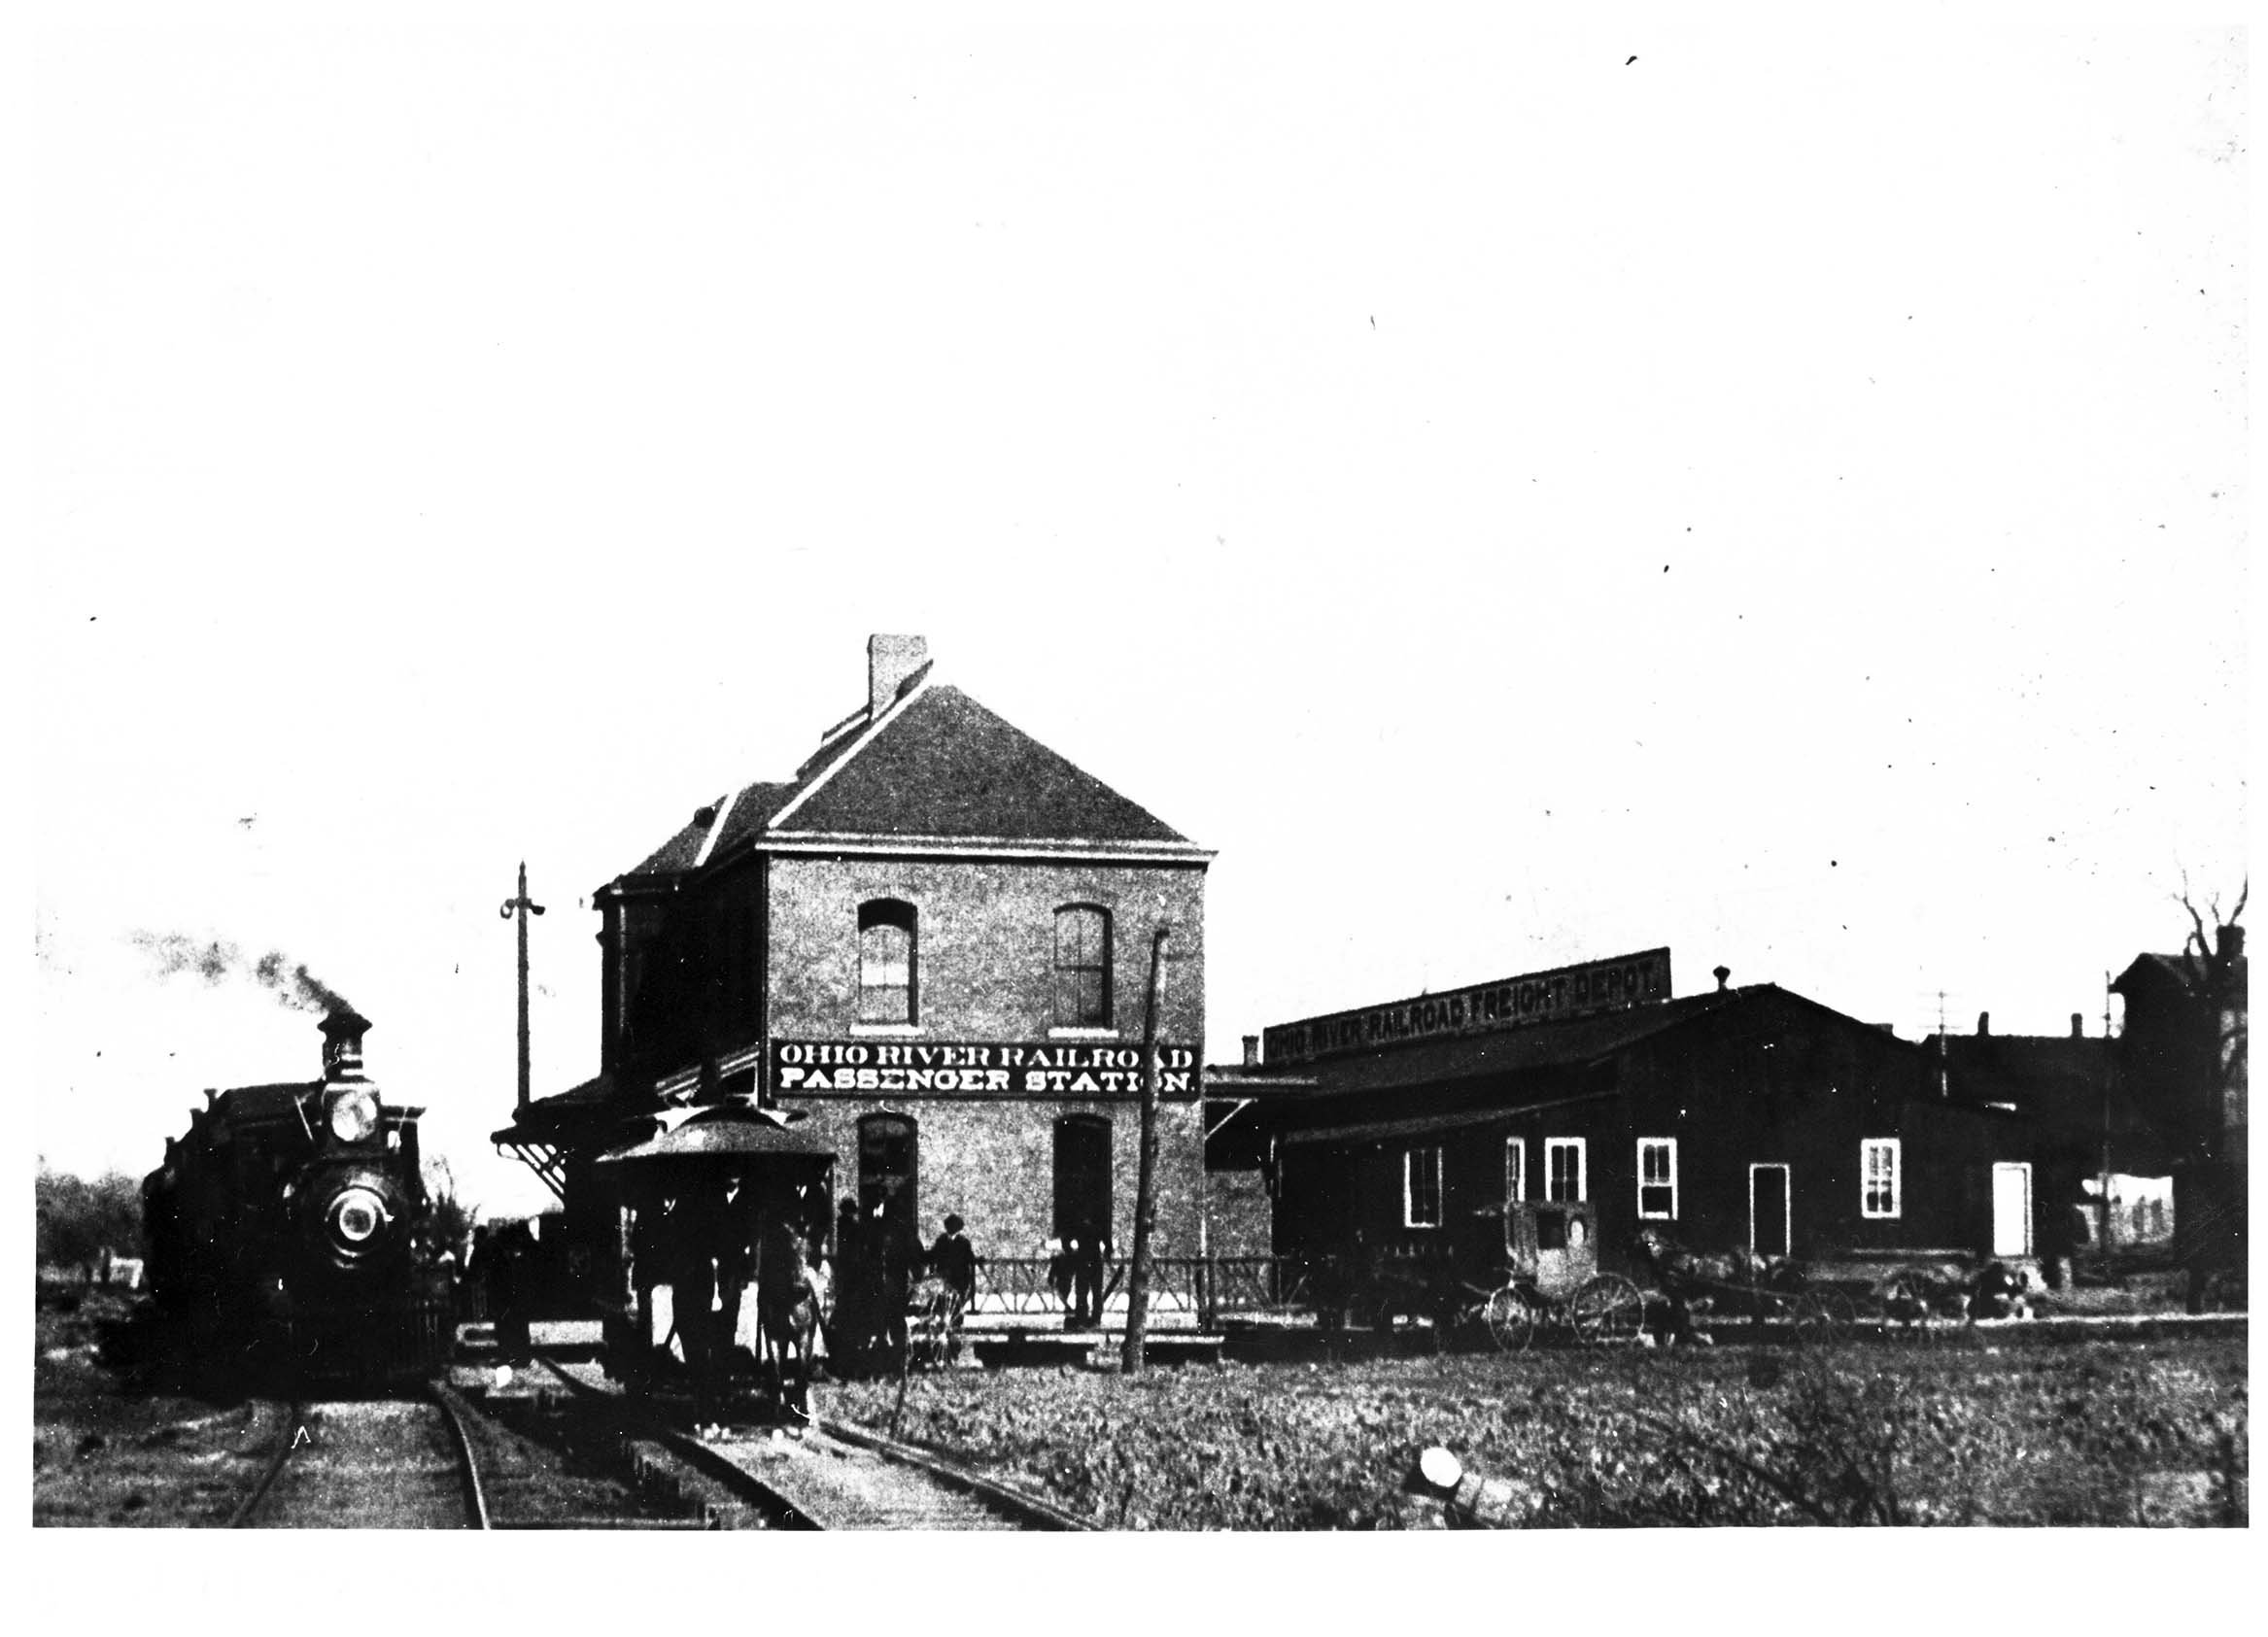 The B&O Depot in 1892. Image courtesy of Marshall University Special Collections